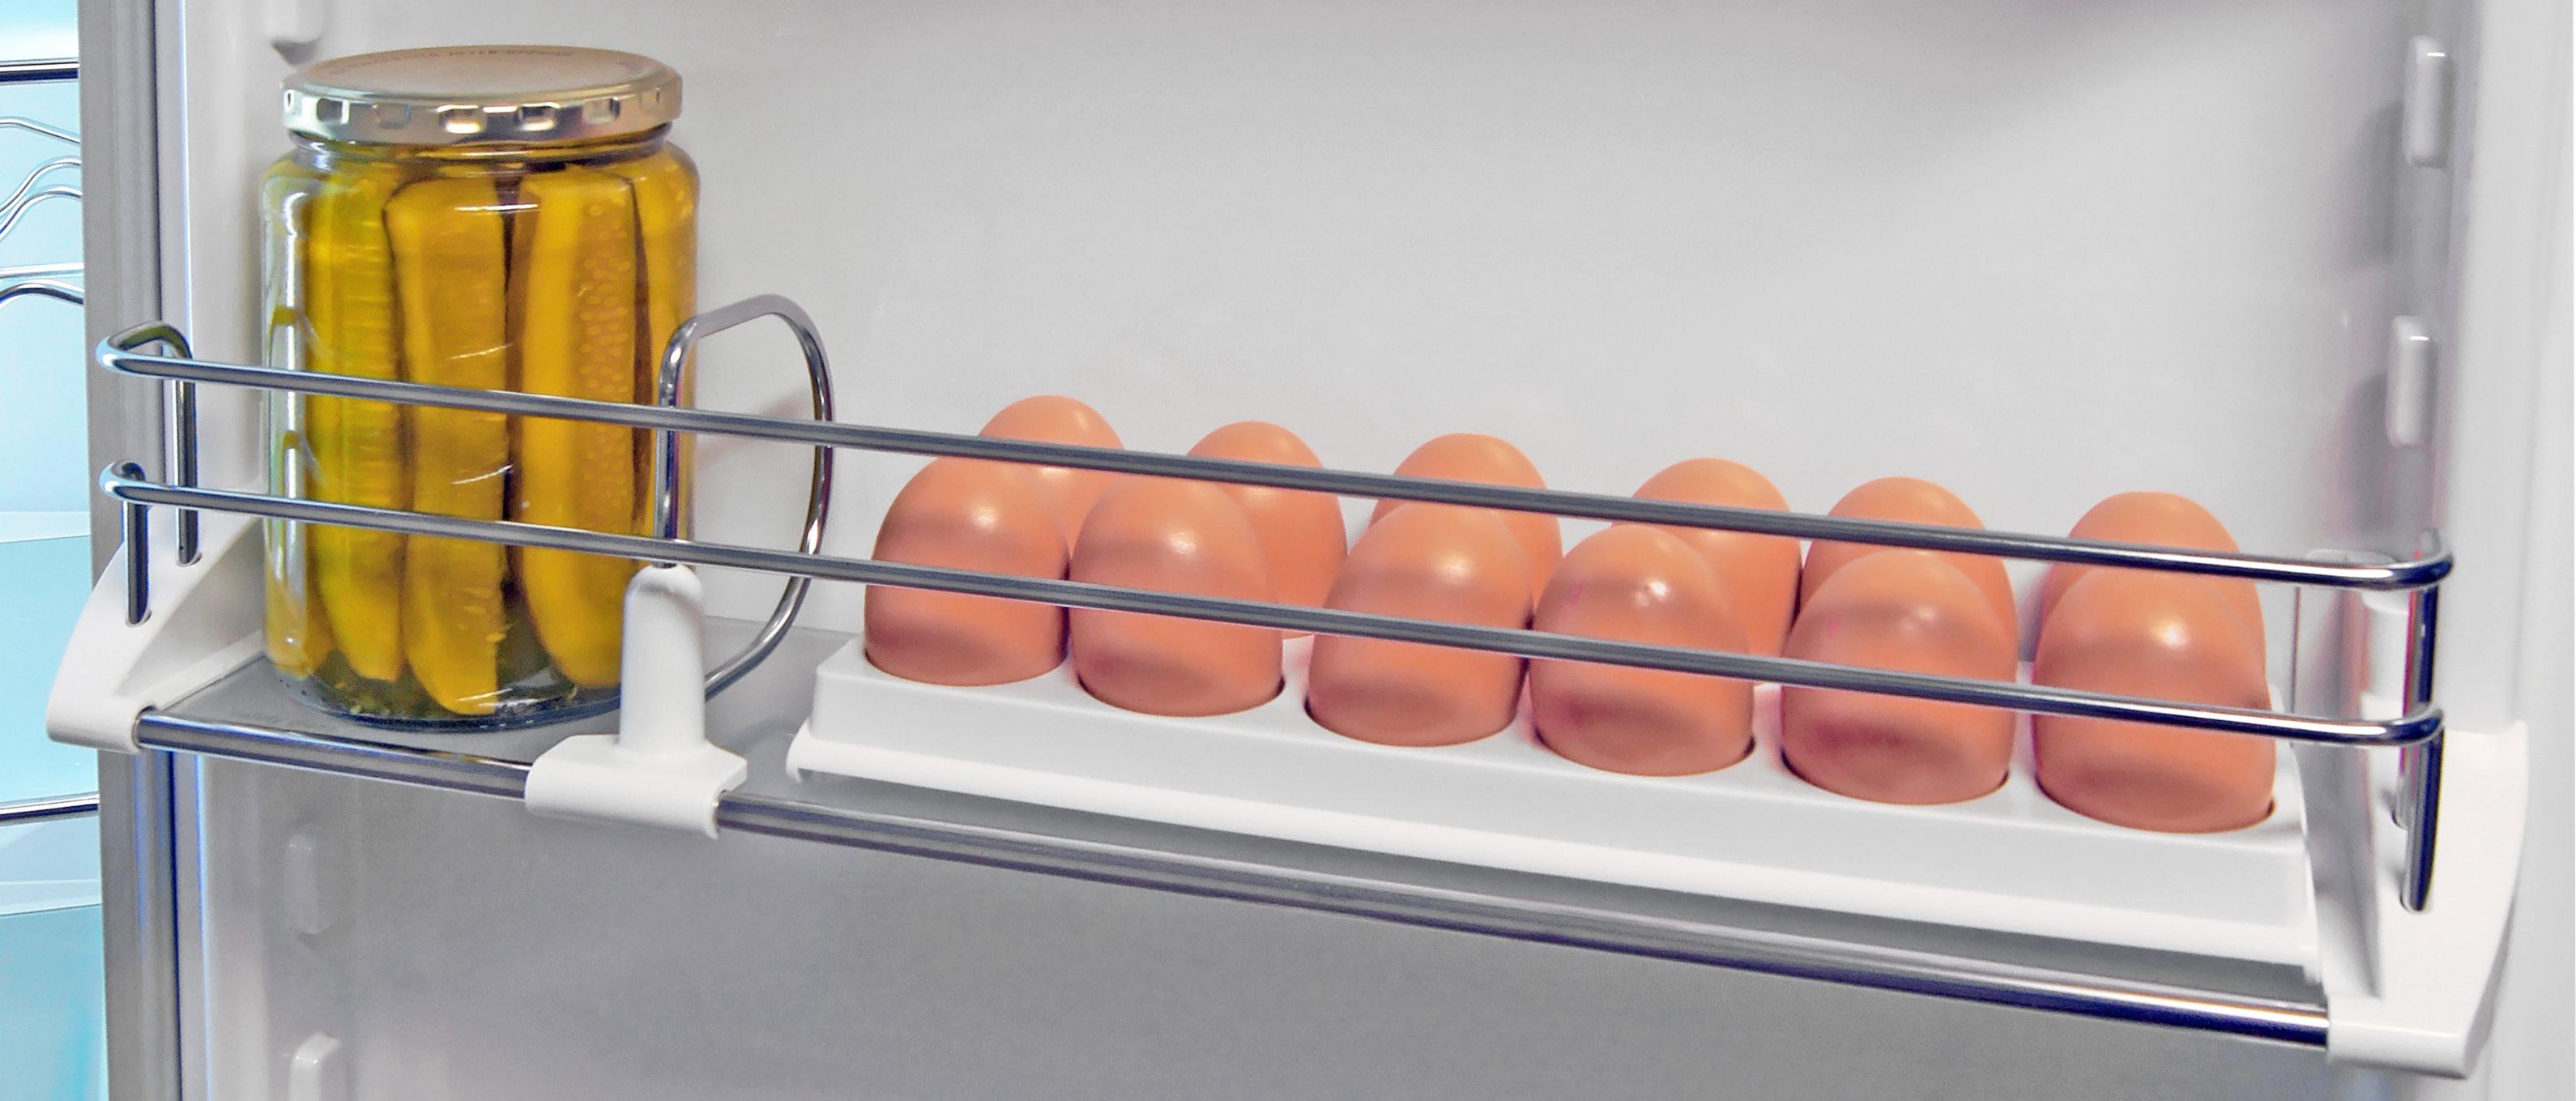 Sliding shelf dividers and an egg tray—two of the many extra perks found inside the high-end Liebherr CS1360 apartment fridge.